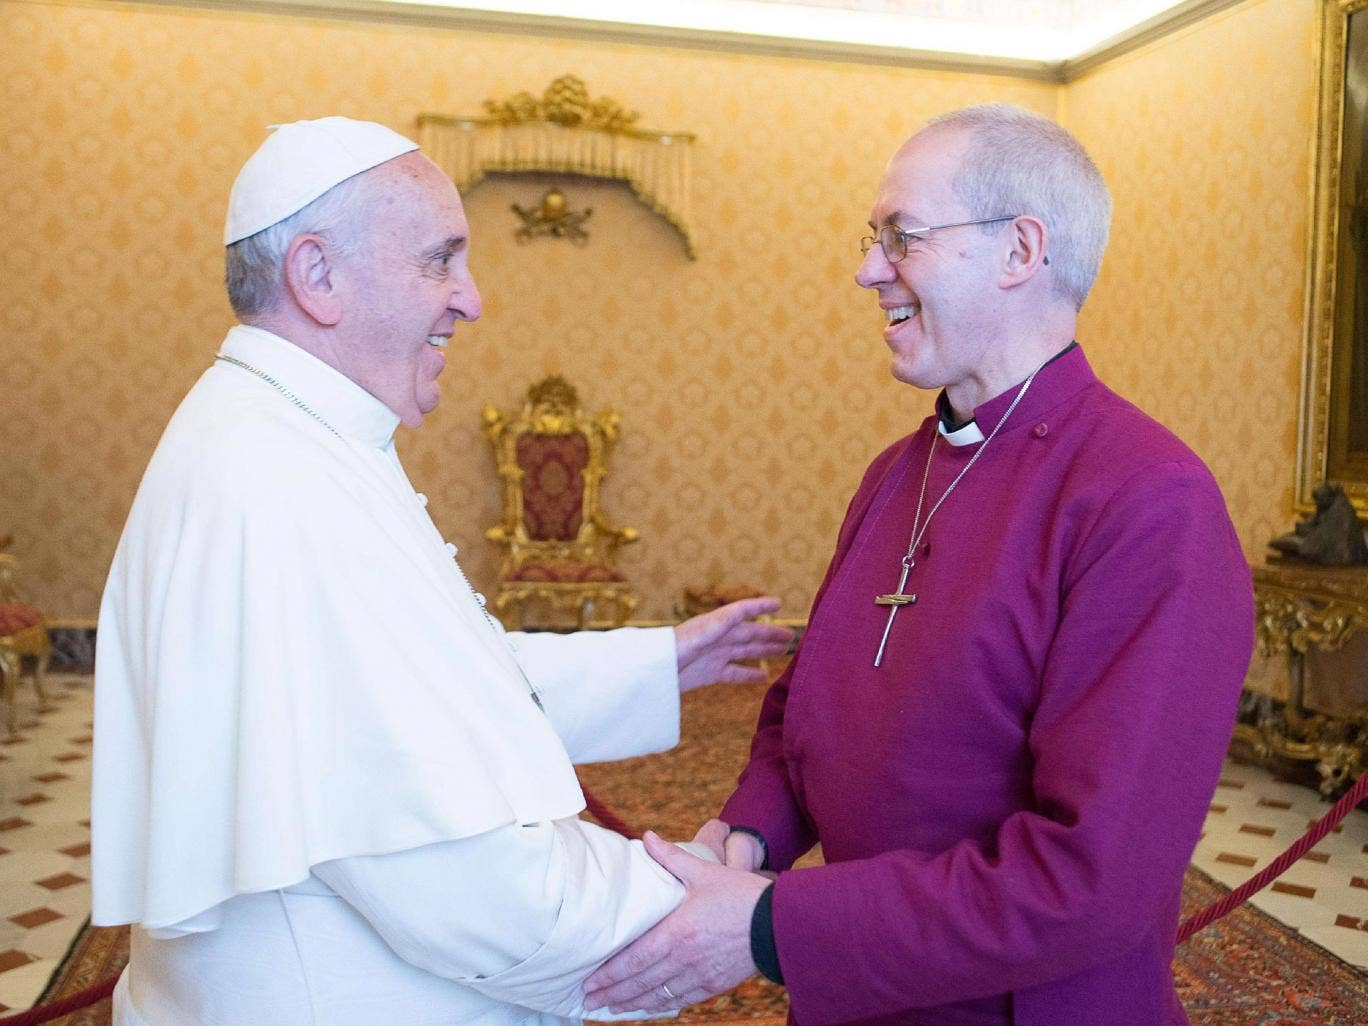 The Pope and the Archbishop of Canterbury, seen at the Vatican this week, have much in common and are clearly not content to 'agree to disagree'